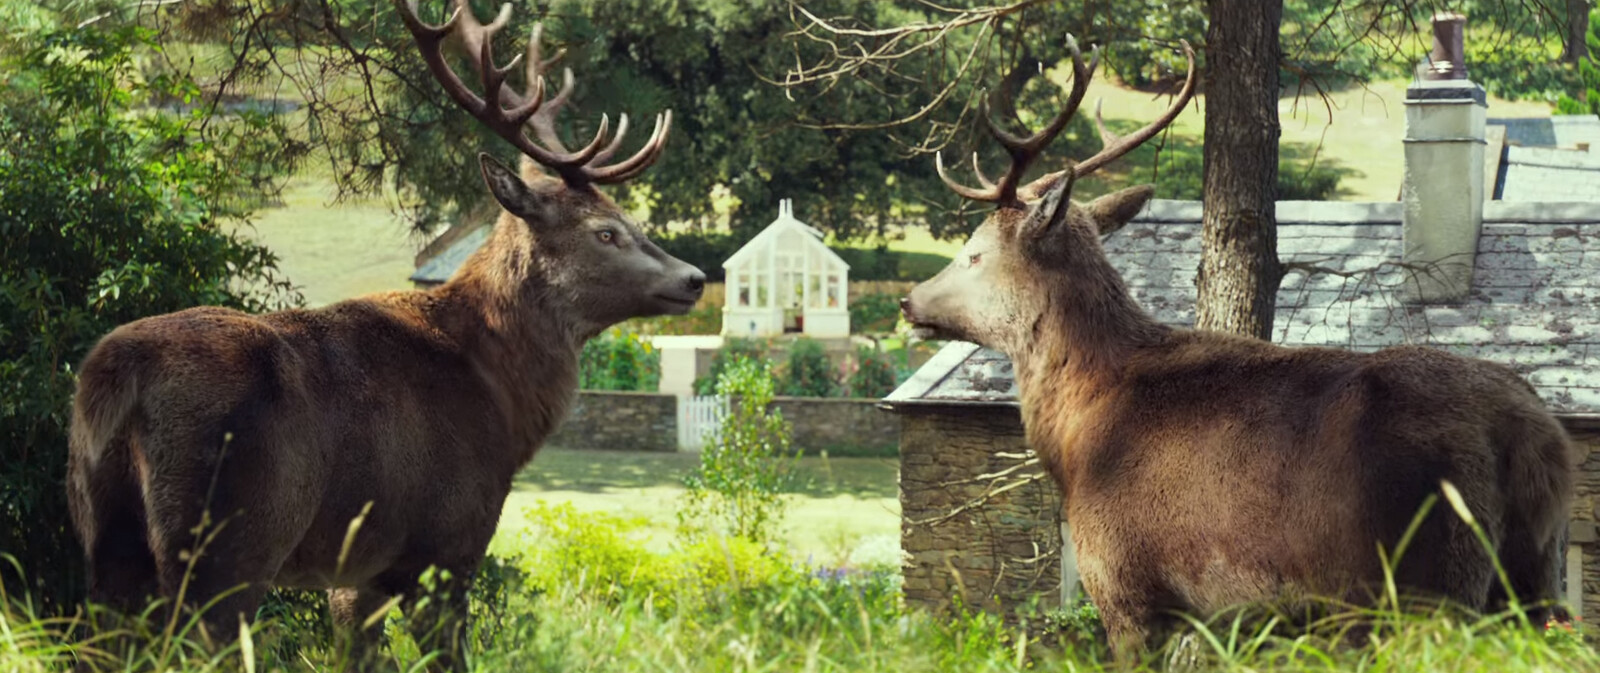 Deer from the film Peter Rabbit (model only).